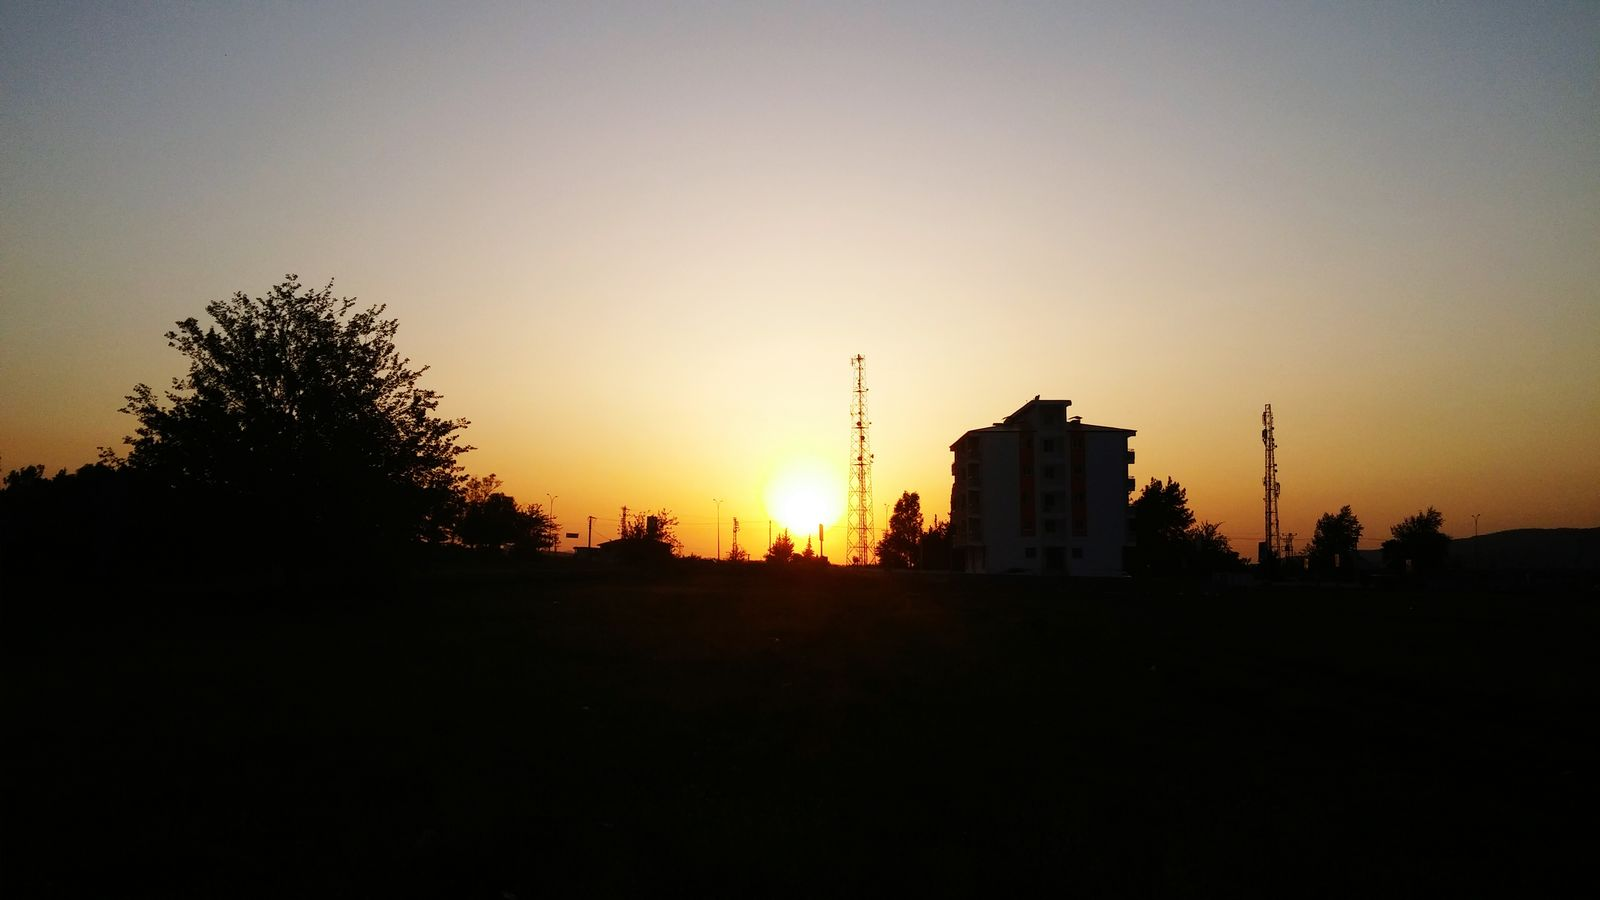 🌳☀ Taking Photos Hello World LG G3 Photography LG G3 The Sun Sky Sunset The Set Of The Day Sundown